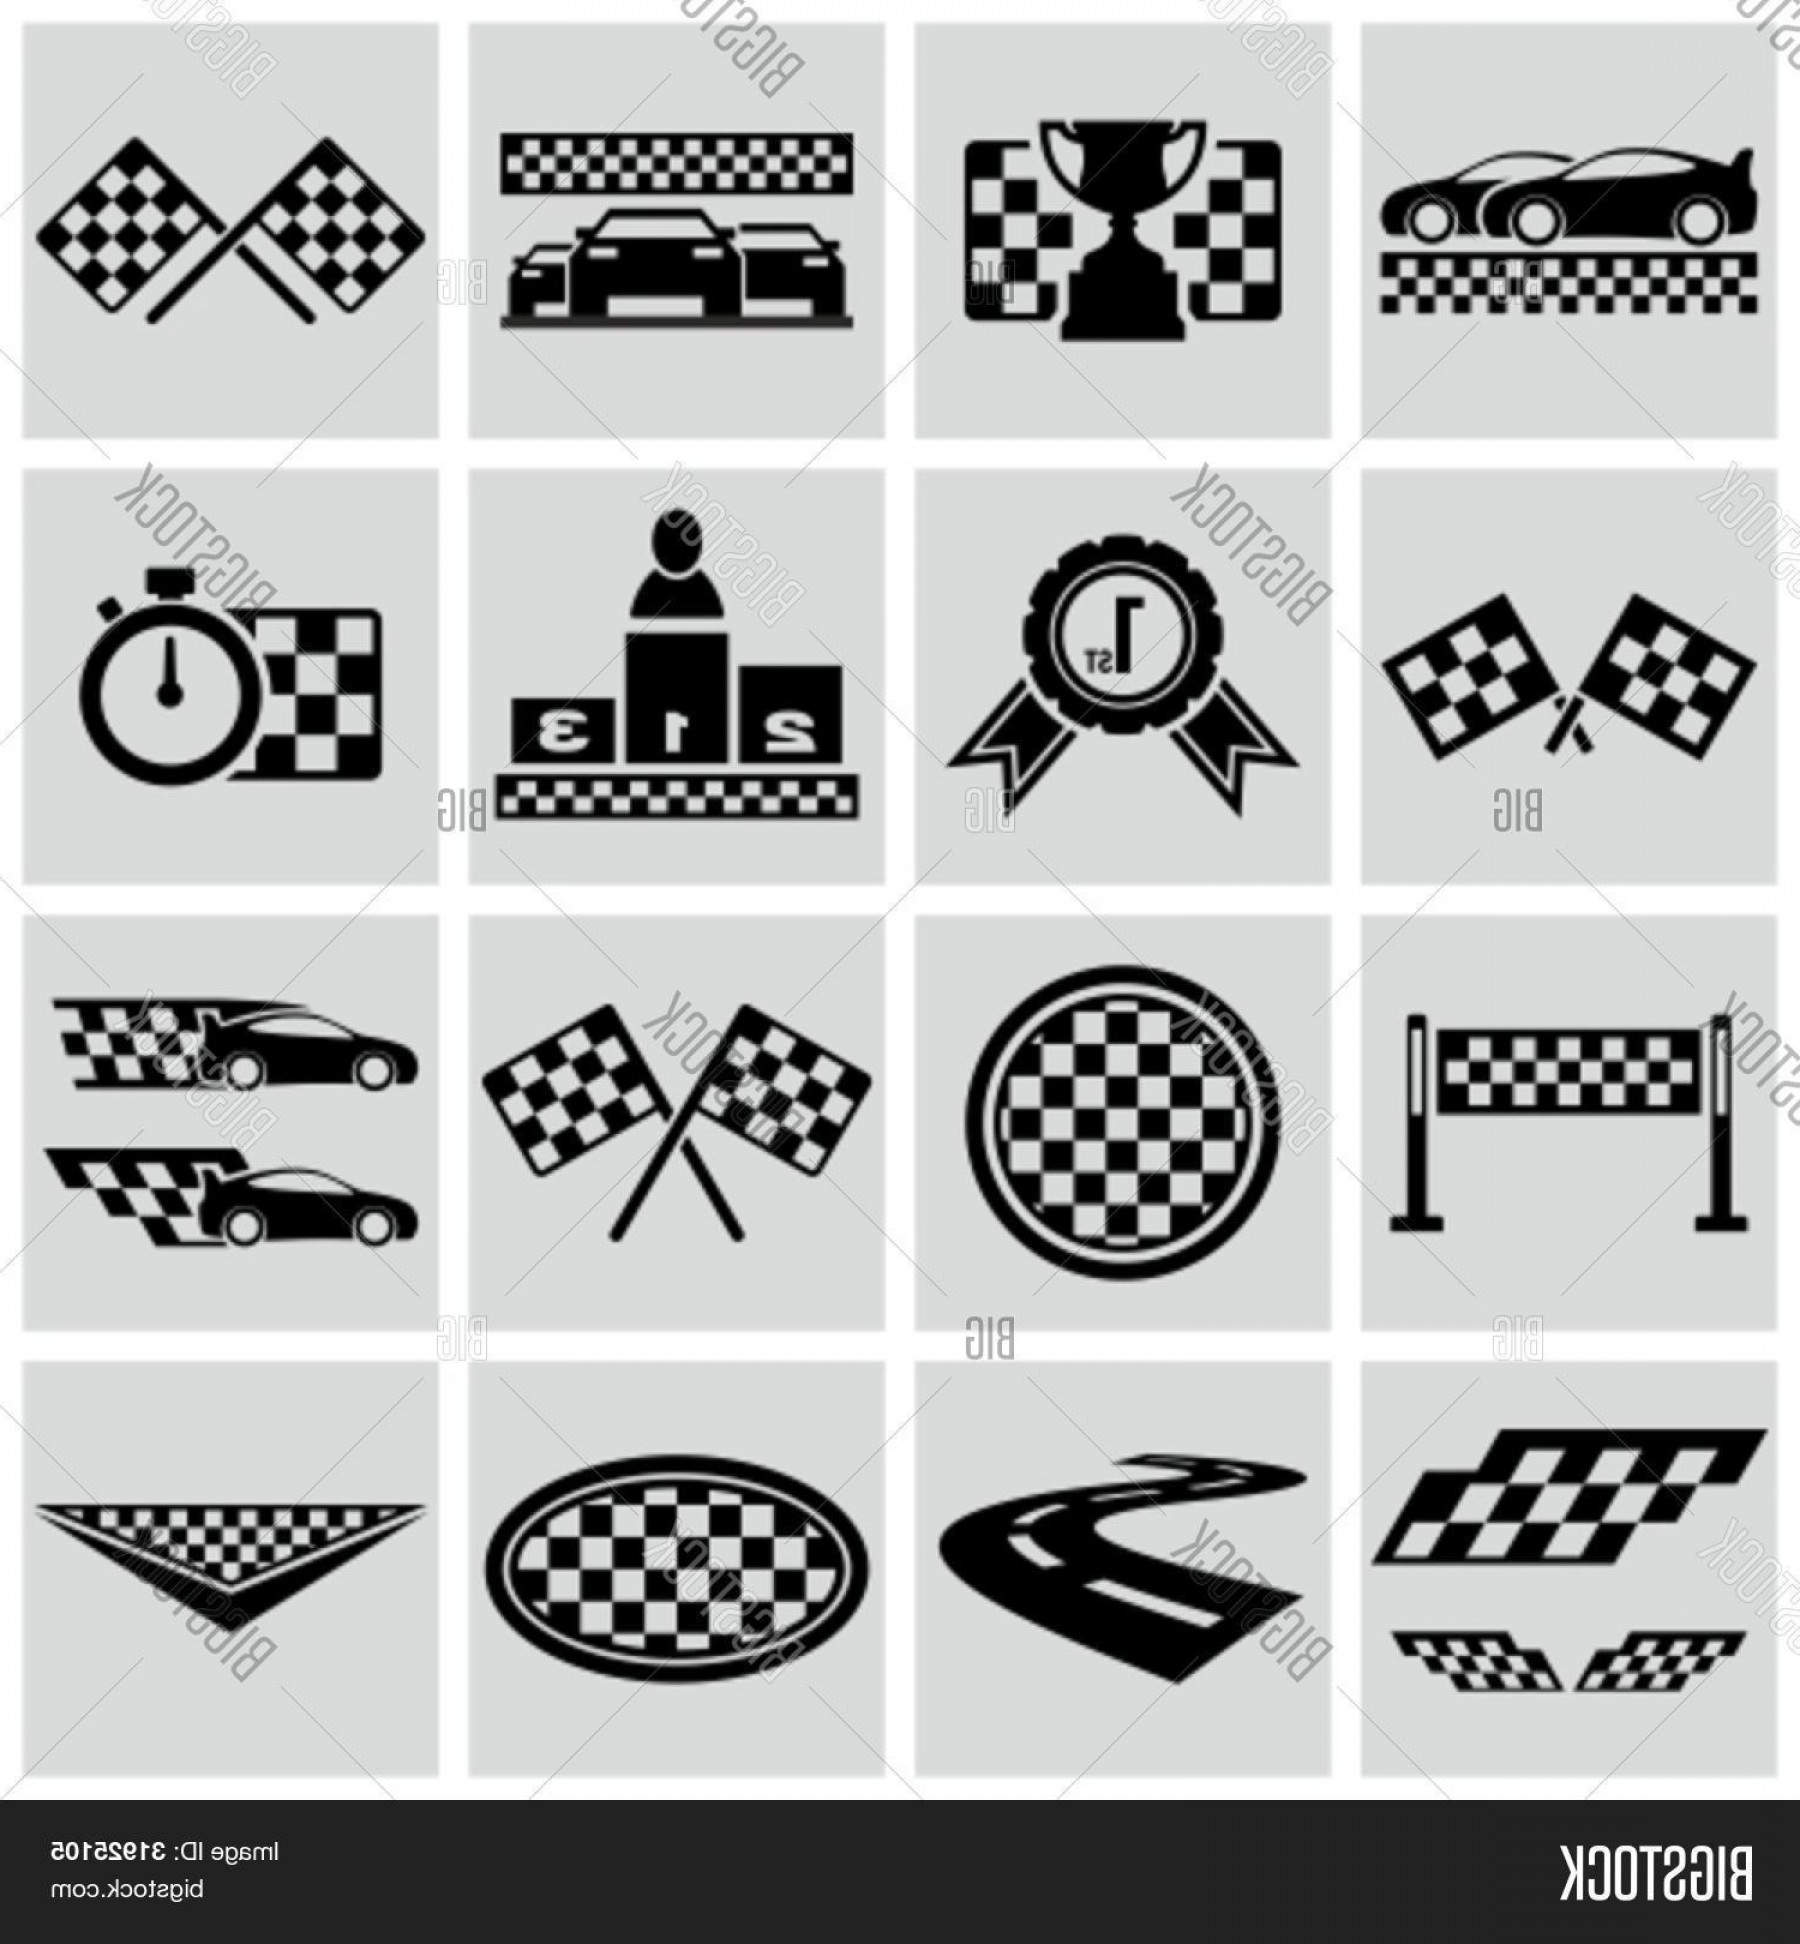 Black And White Vector Racing Graphics: Stock Vector Racing And Speed Related Icons Set Vector Racing Checkered Graphic Elements